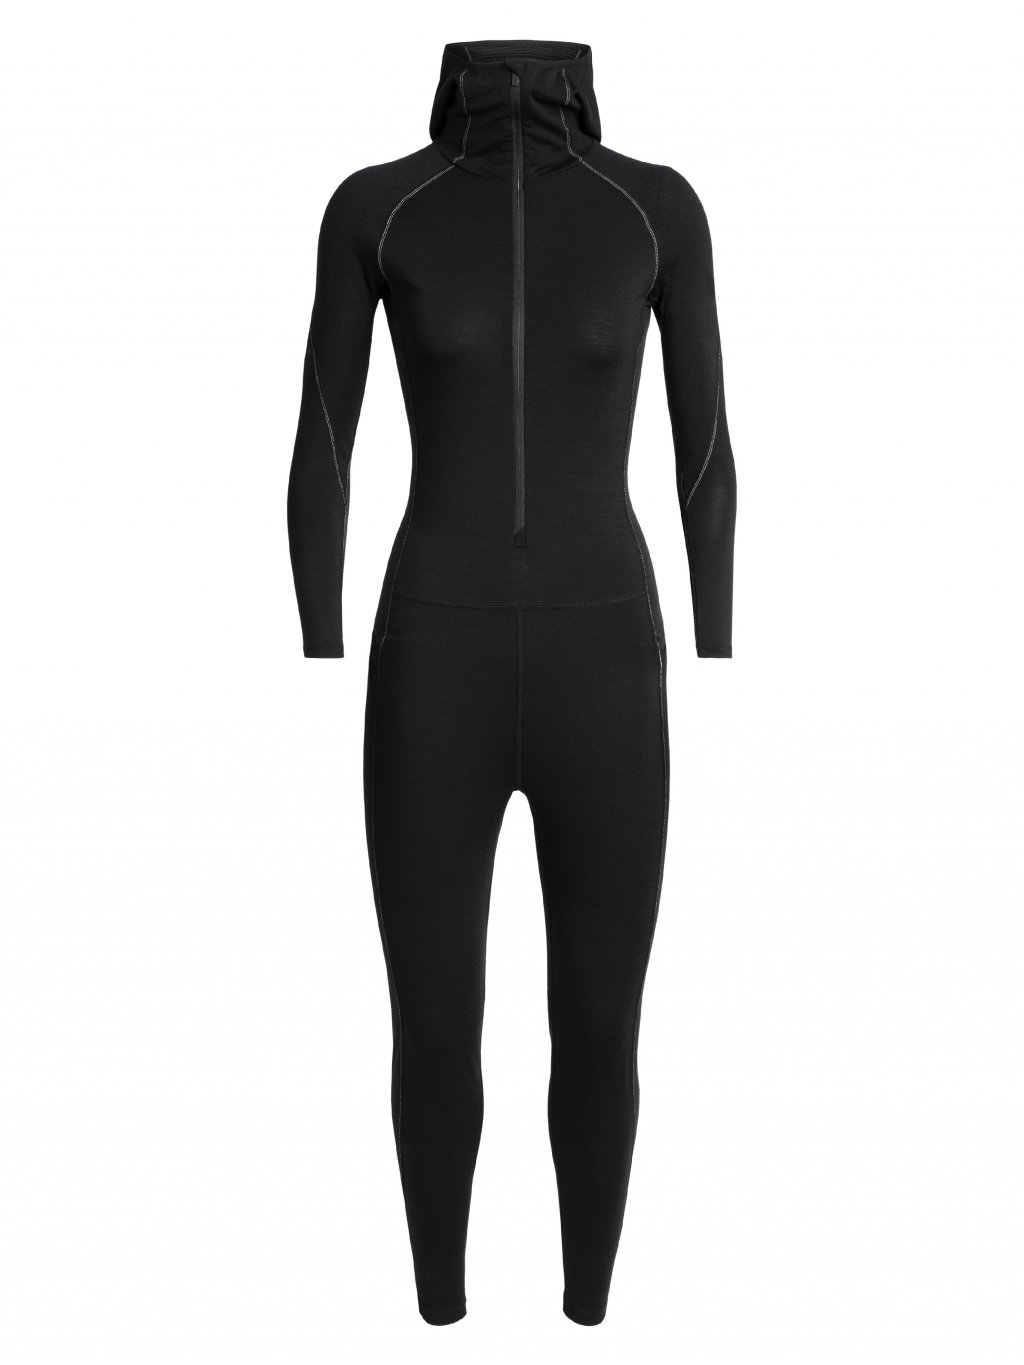 FW19 BASELAYER WOMEN 200 ZONE ONE SHEEP SUIT 104464010 1